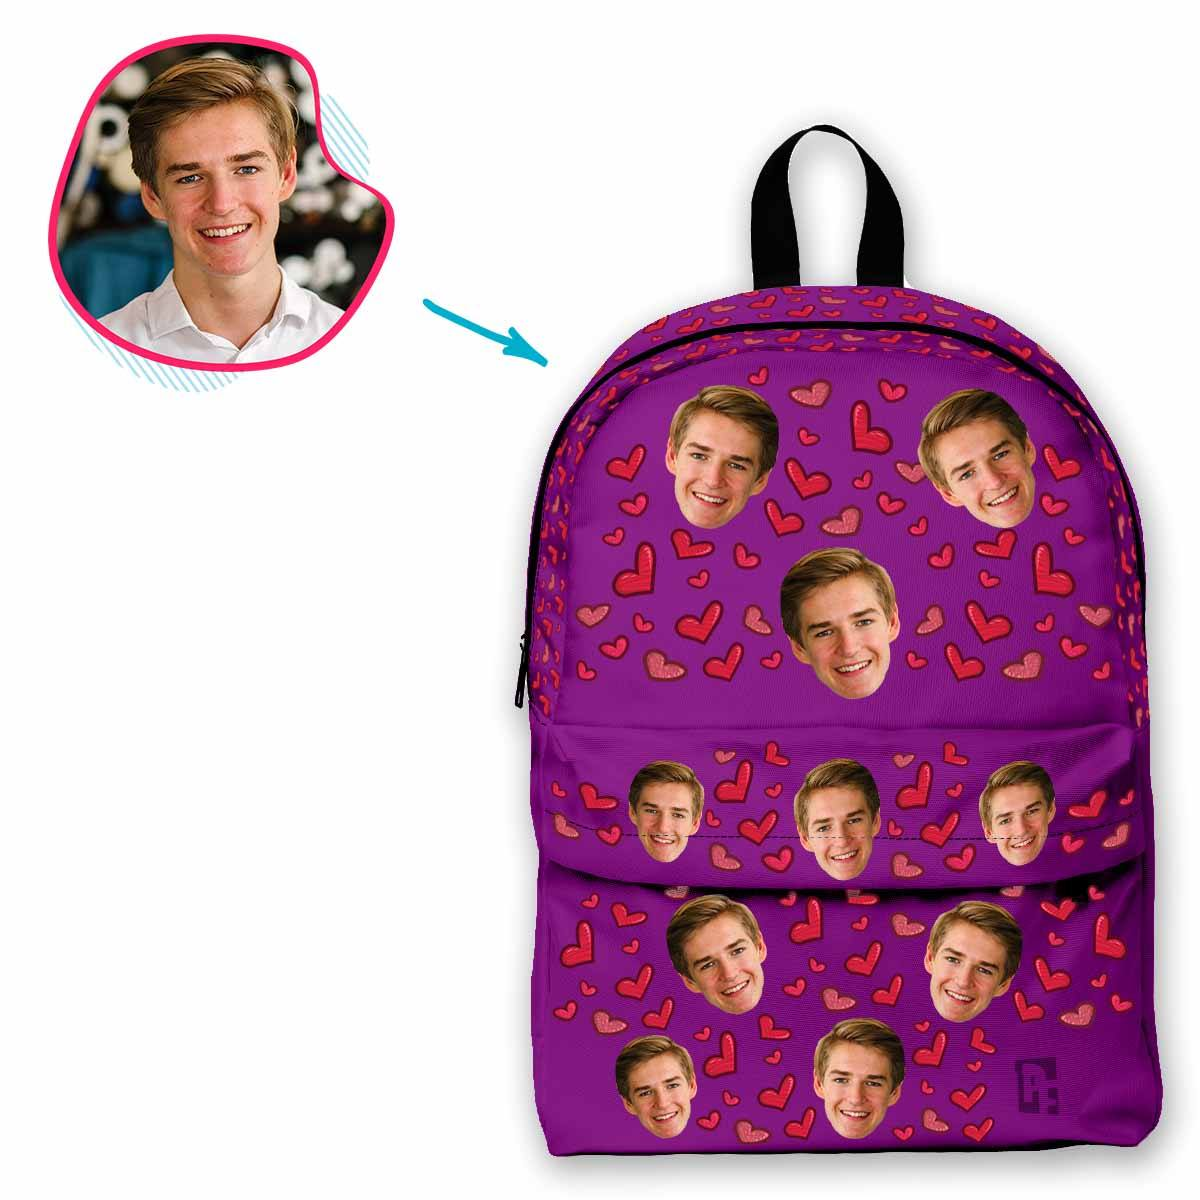 purple Heart classic backpack personalized with photo of face printed on it